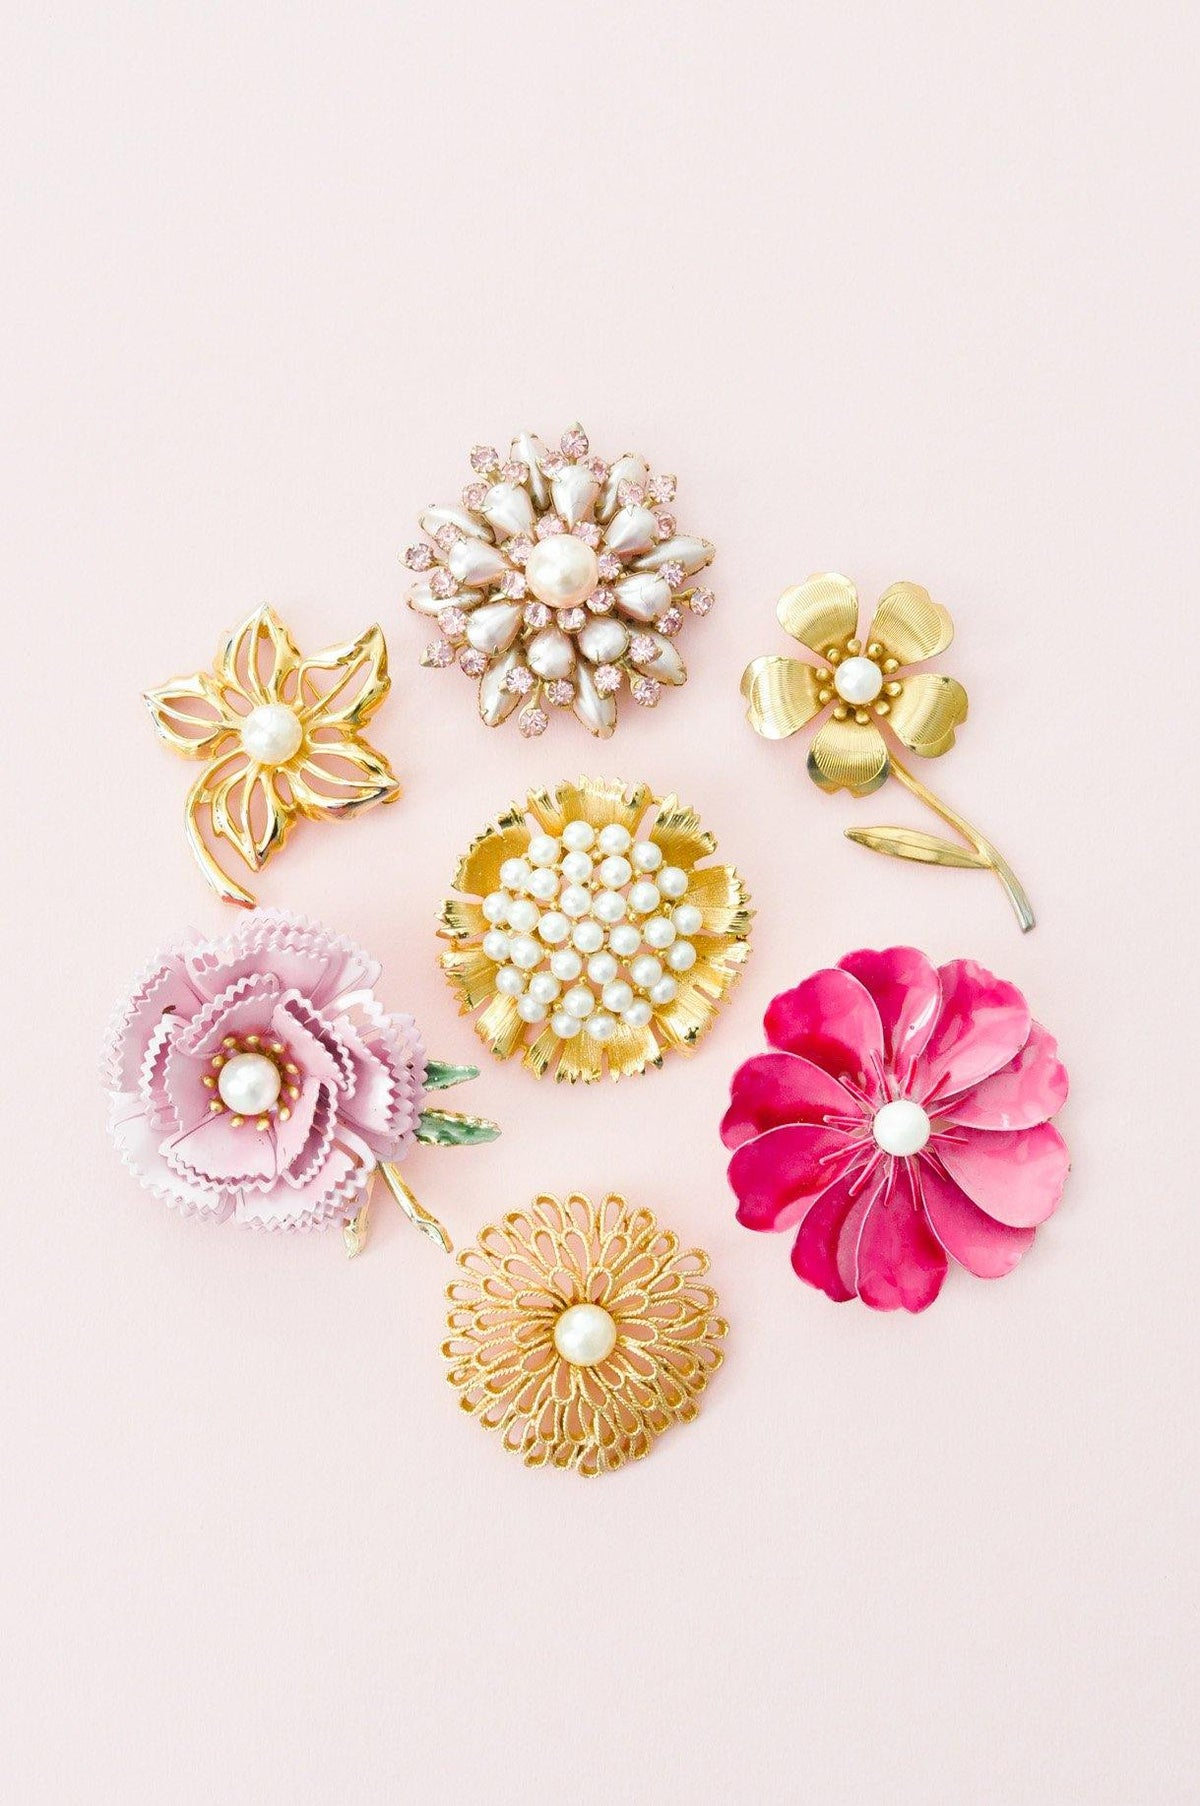 Vintage pearl brooches from Sweet & Spark.